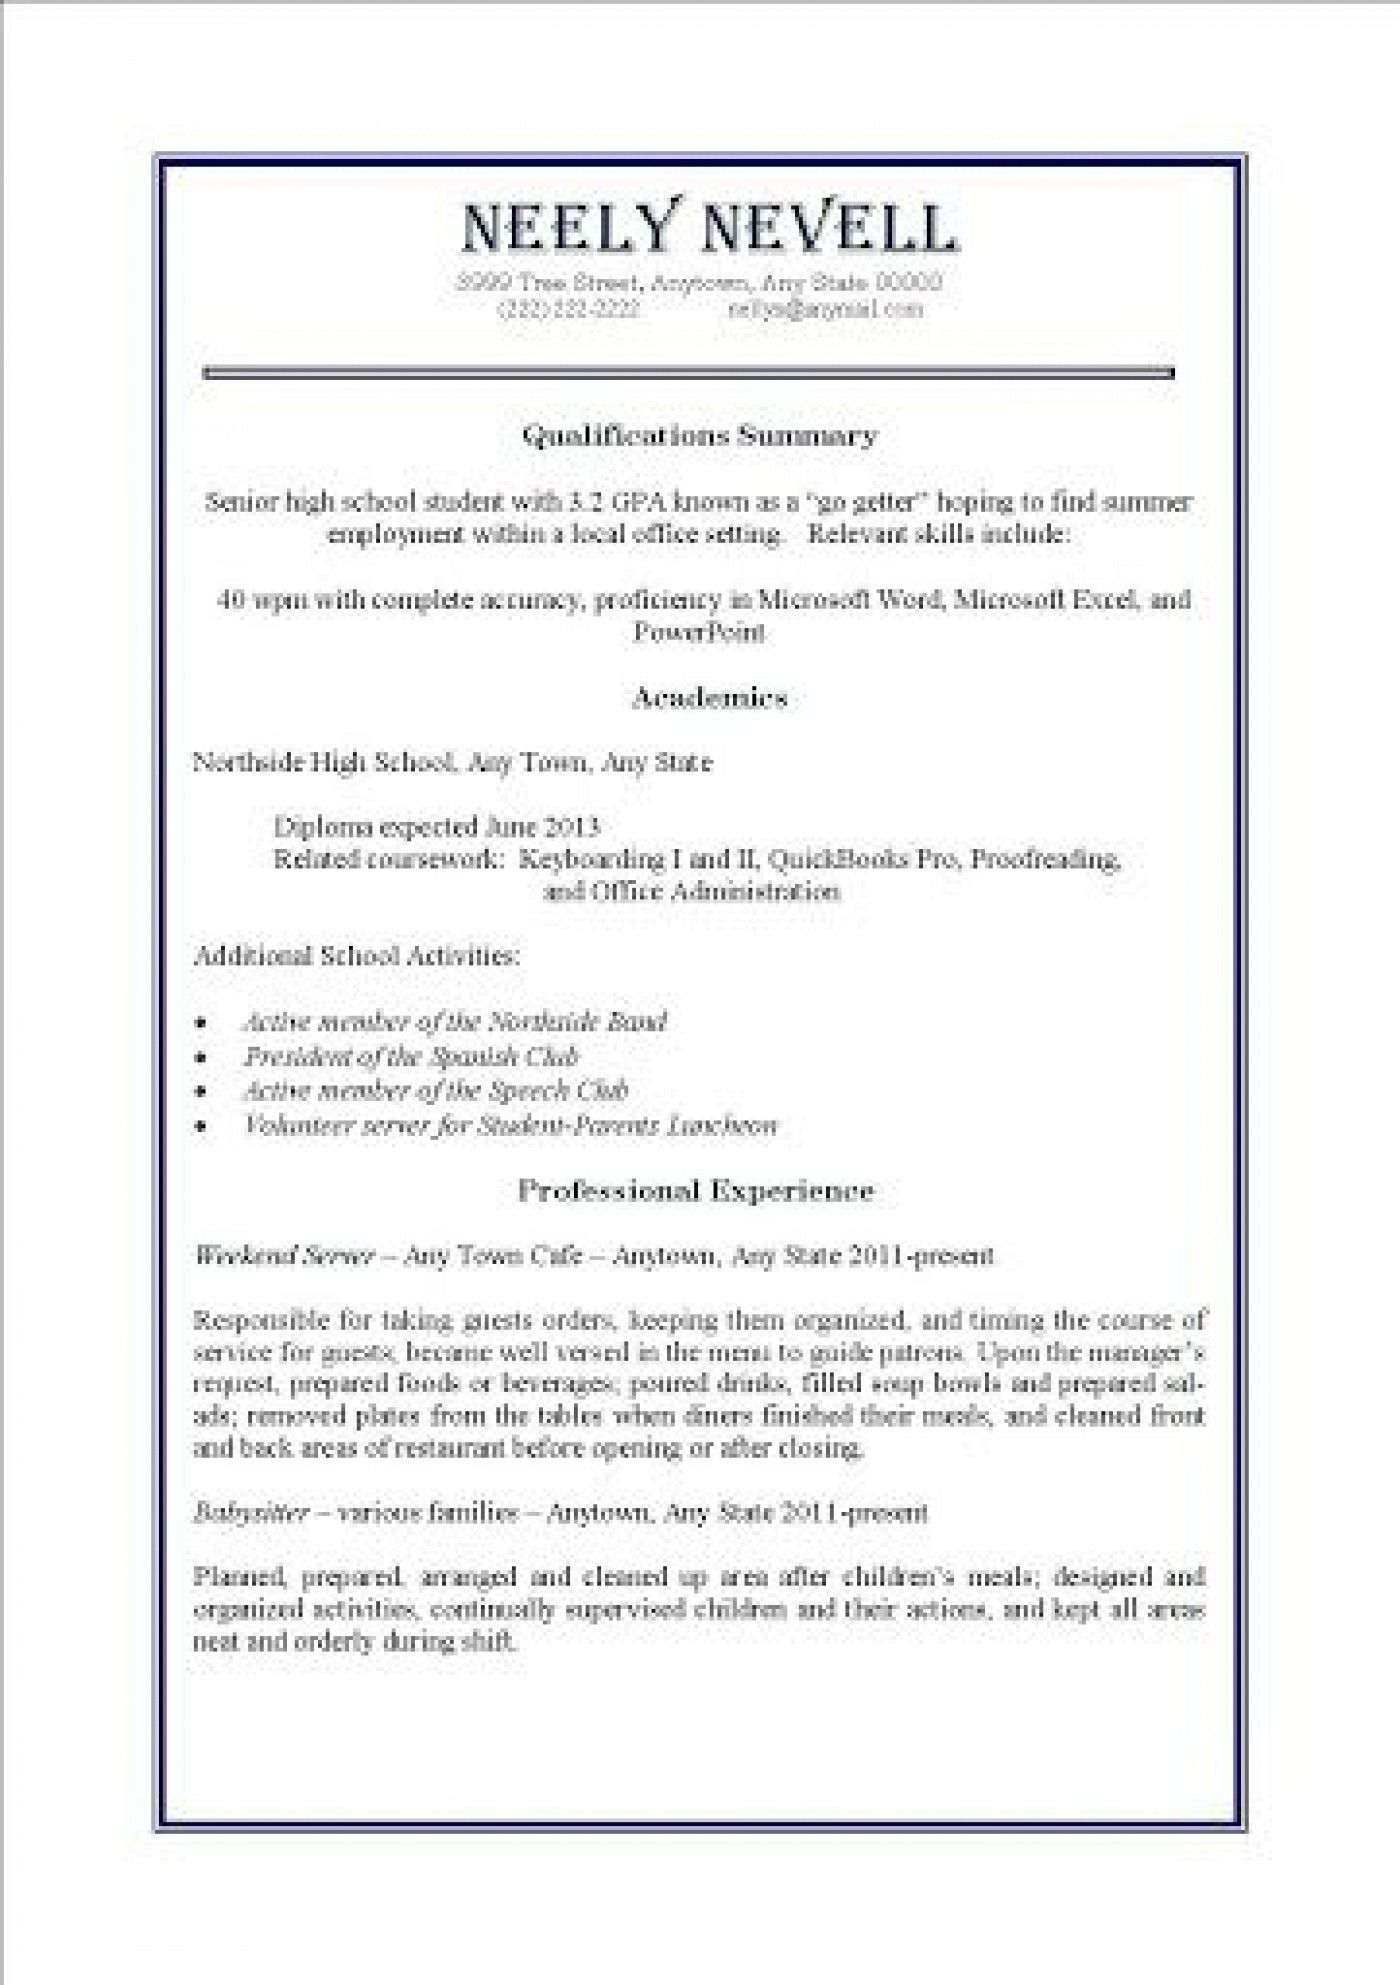 000 Awesome Resume Template For Teen High Definition  Teenager First Job Australia1400